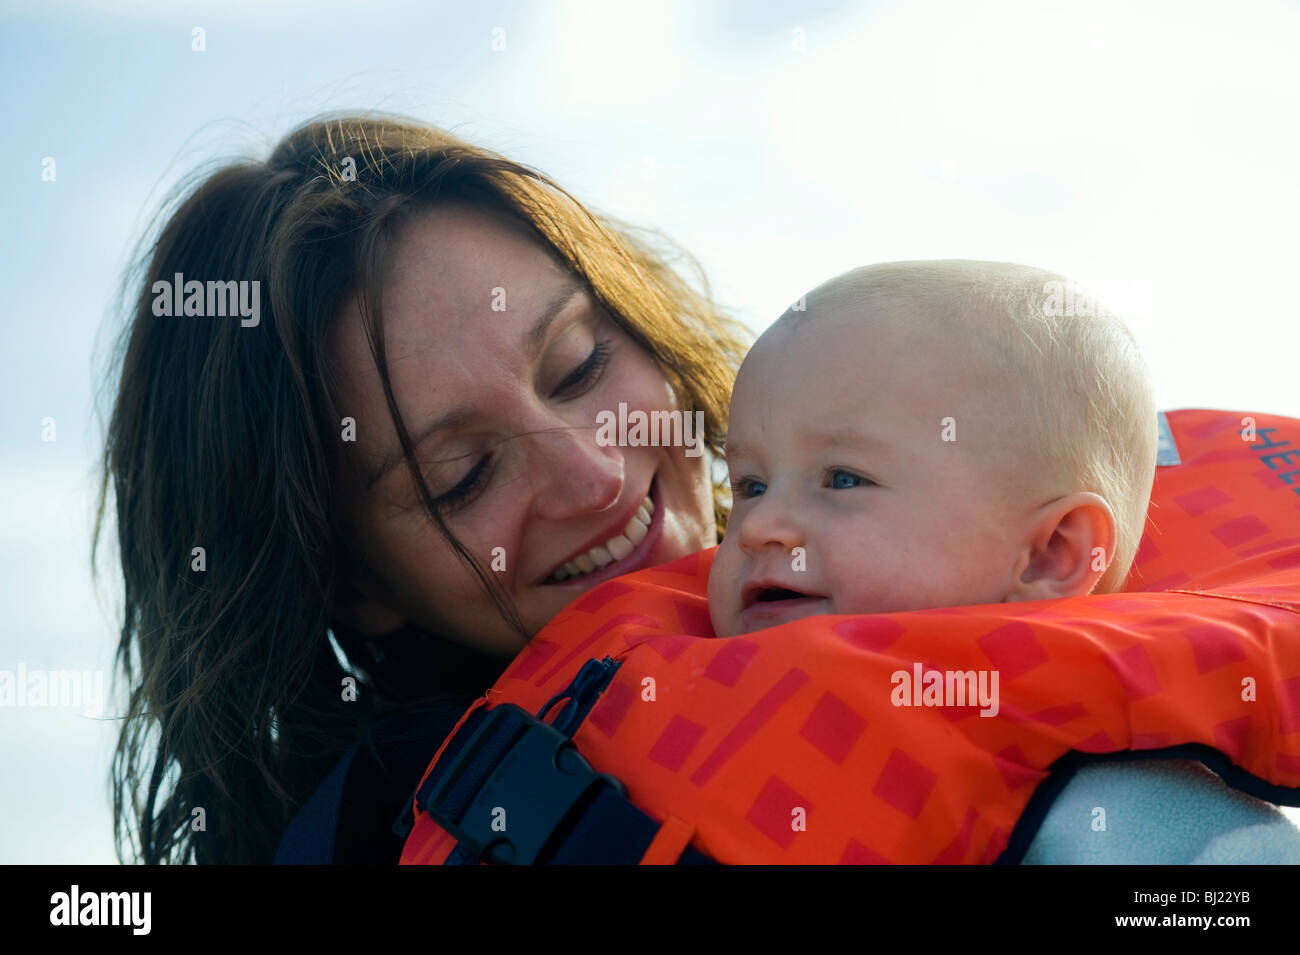 Life Vests Stock Photos Amp Life Vests Stock Images Alamy